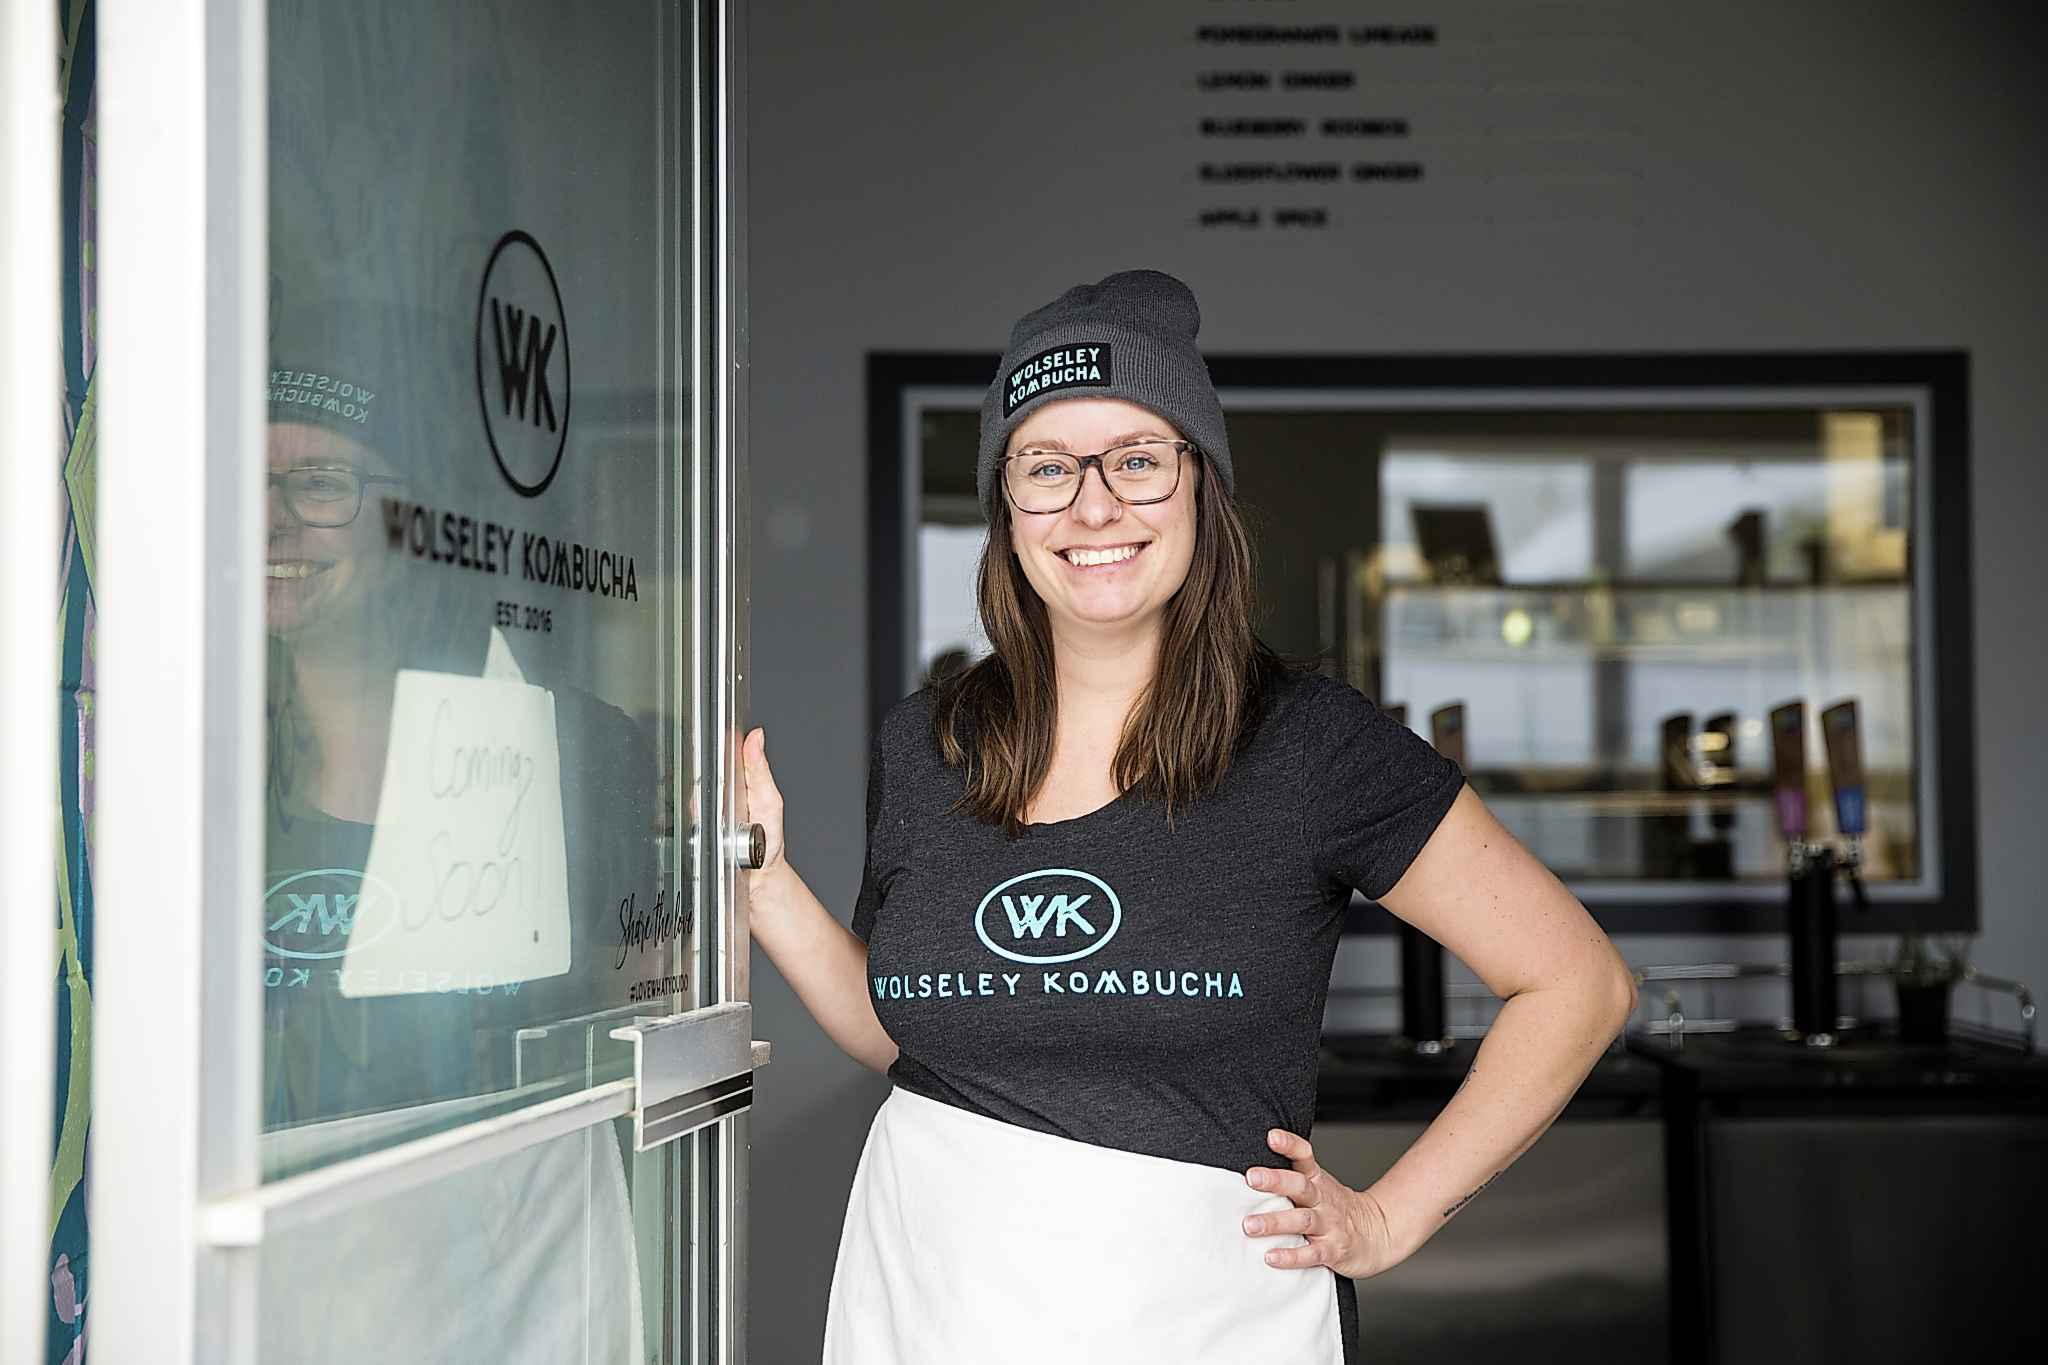 The zoning on Wall will allow Michelle Leclair's business to both brew and serve kombucha with significantly less overhead. (Mikaela MacKenzie / Winnipeg Free Press)